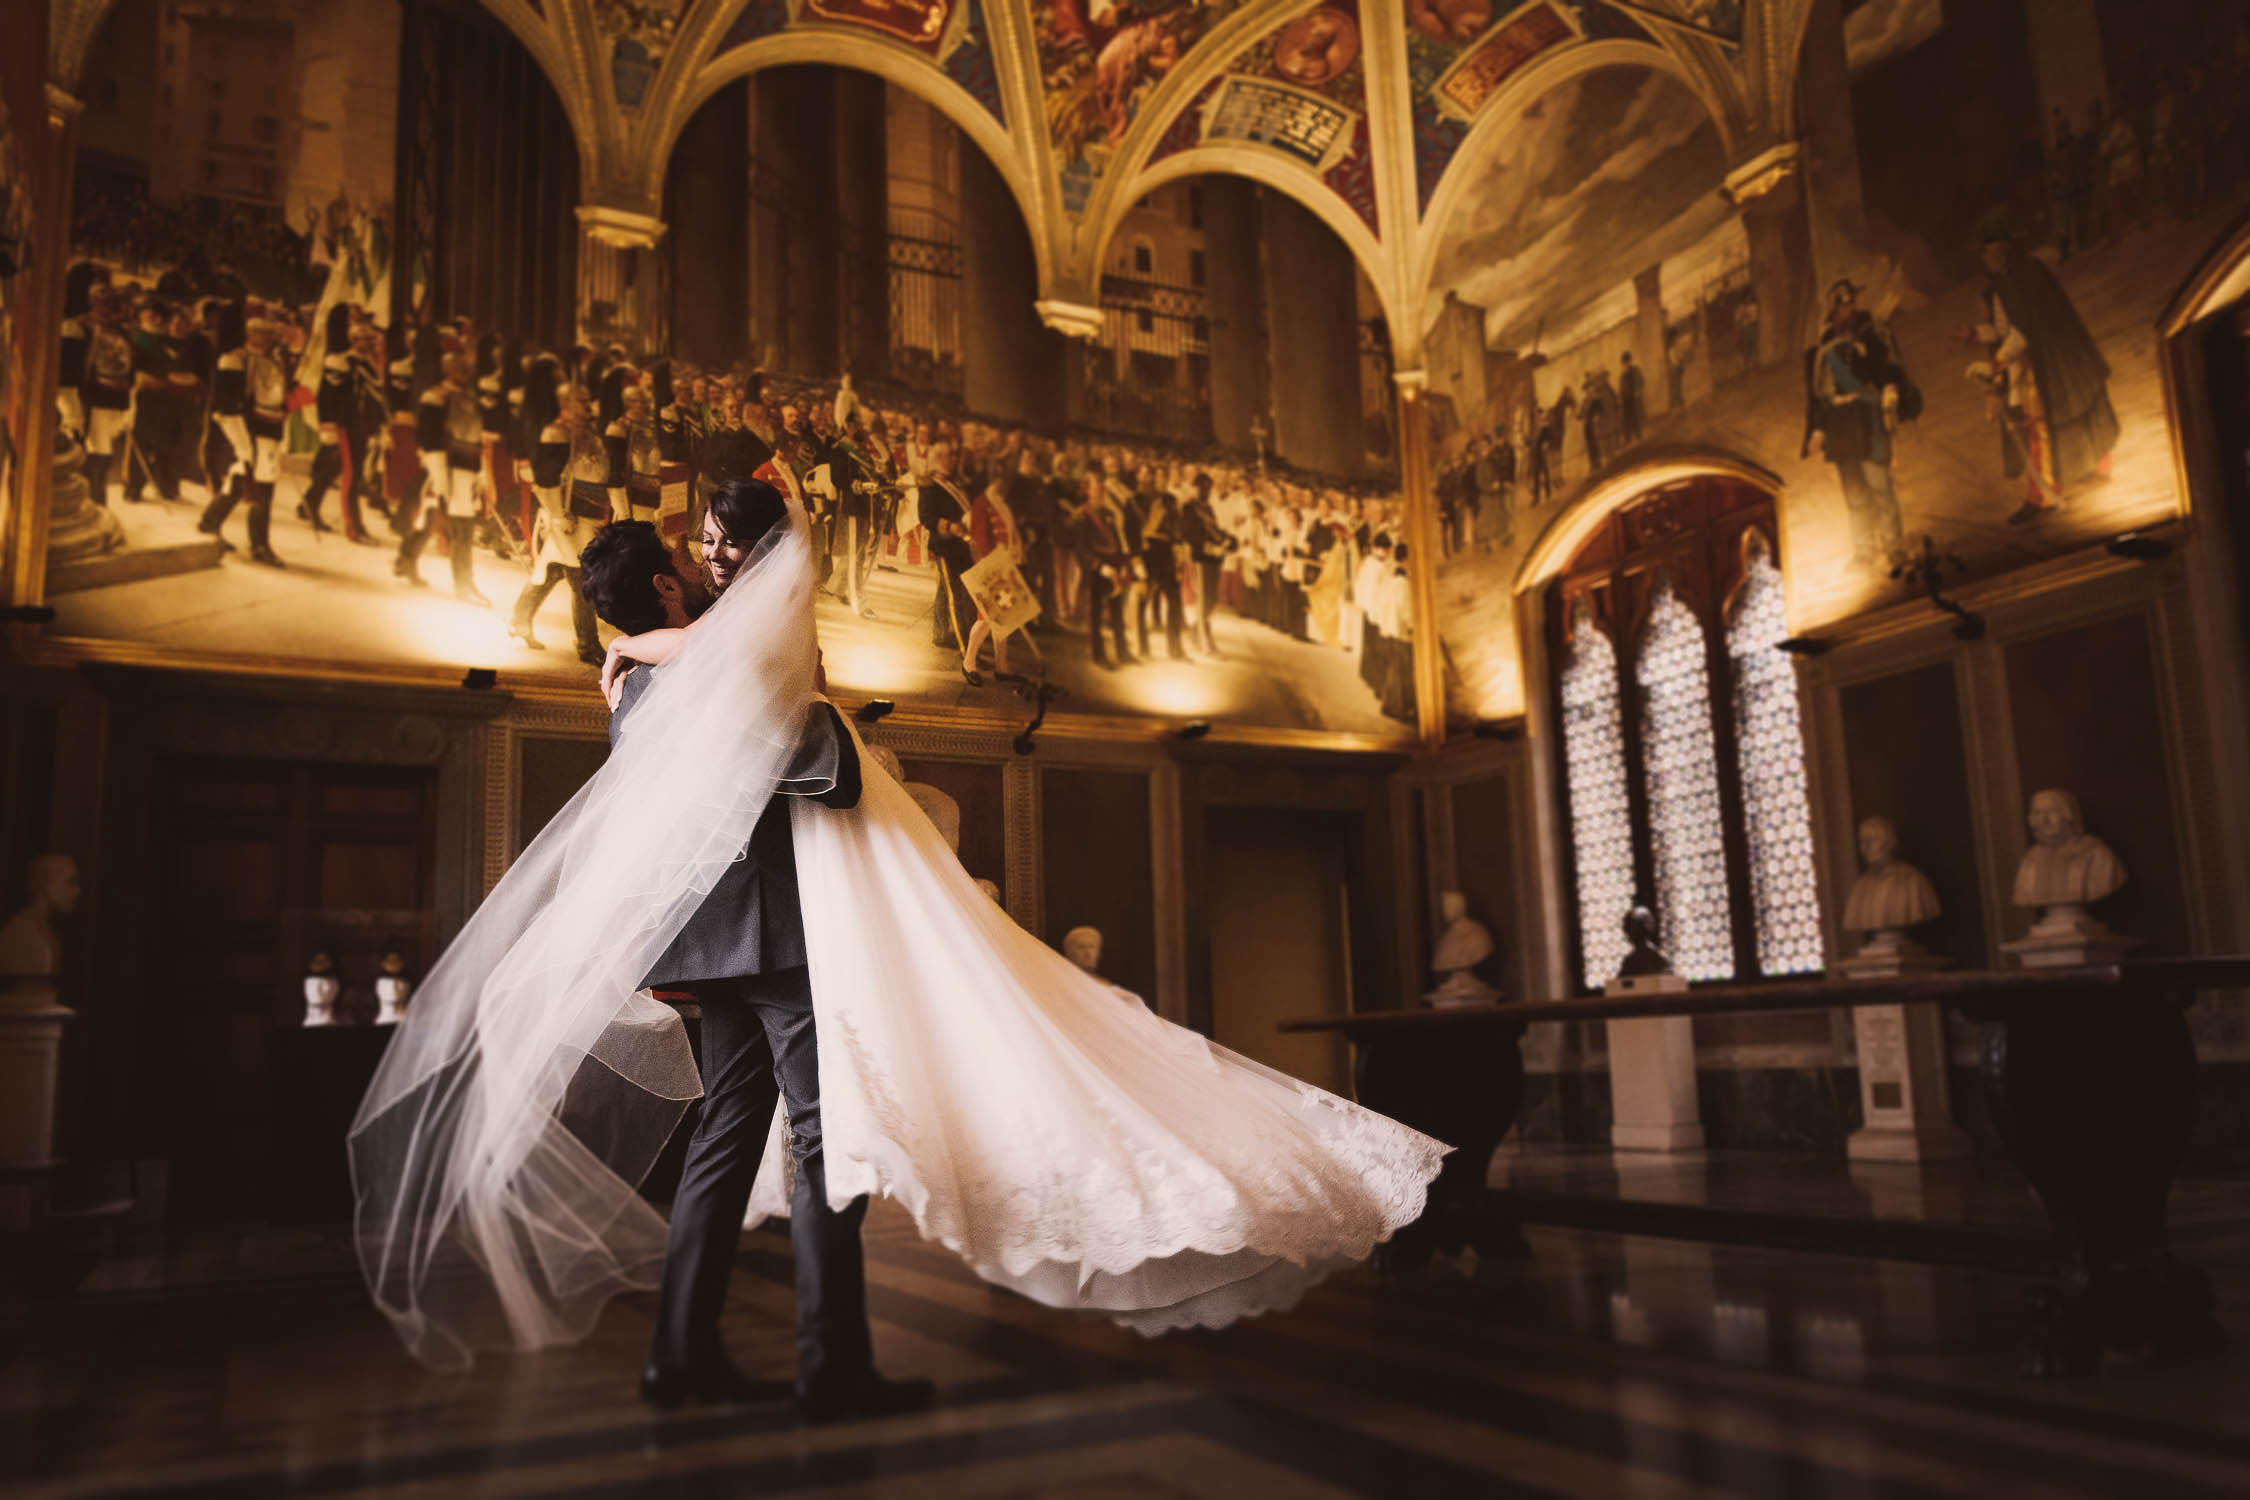 Bride Groom Wedding Portrait In Siena At Palazzo Pubblico For A Gorgeous Intimate Destination